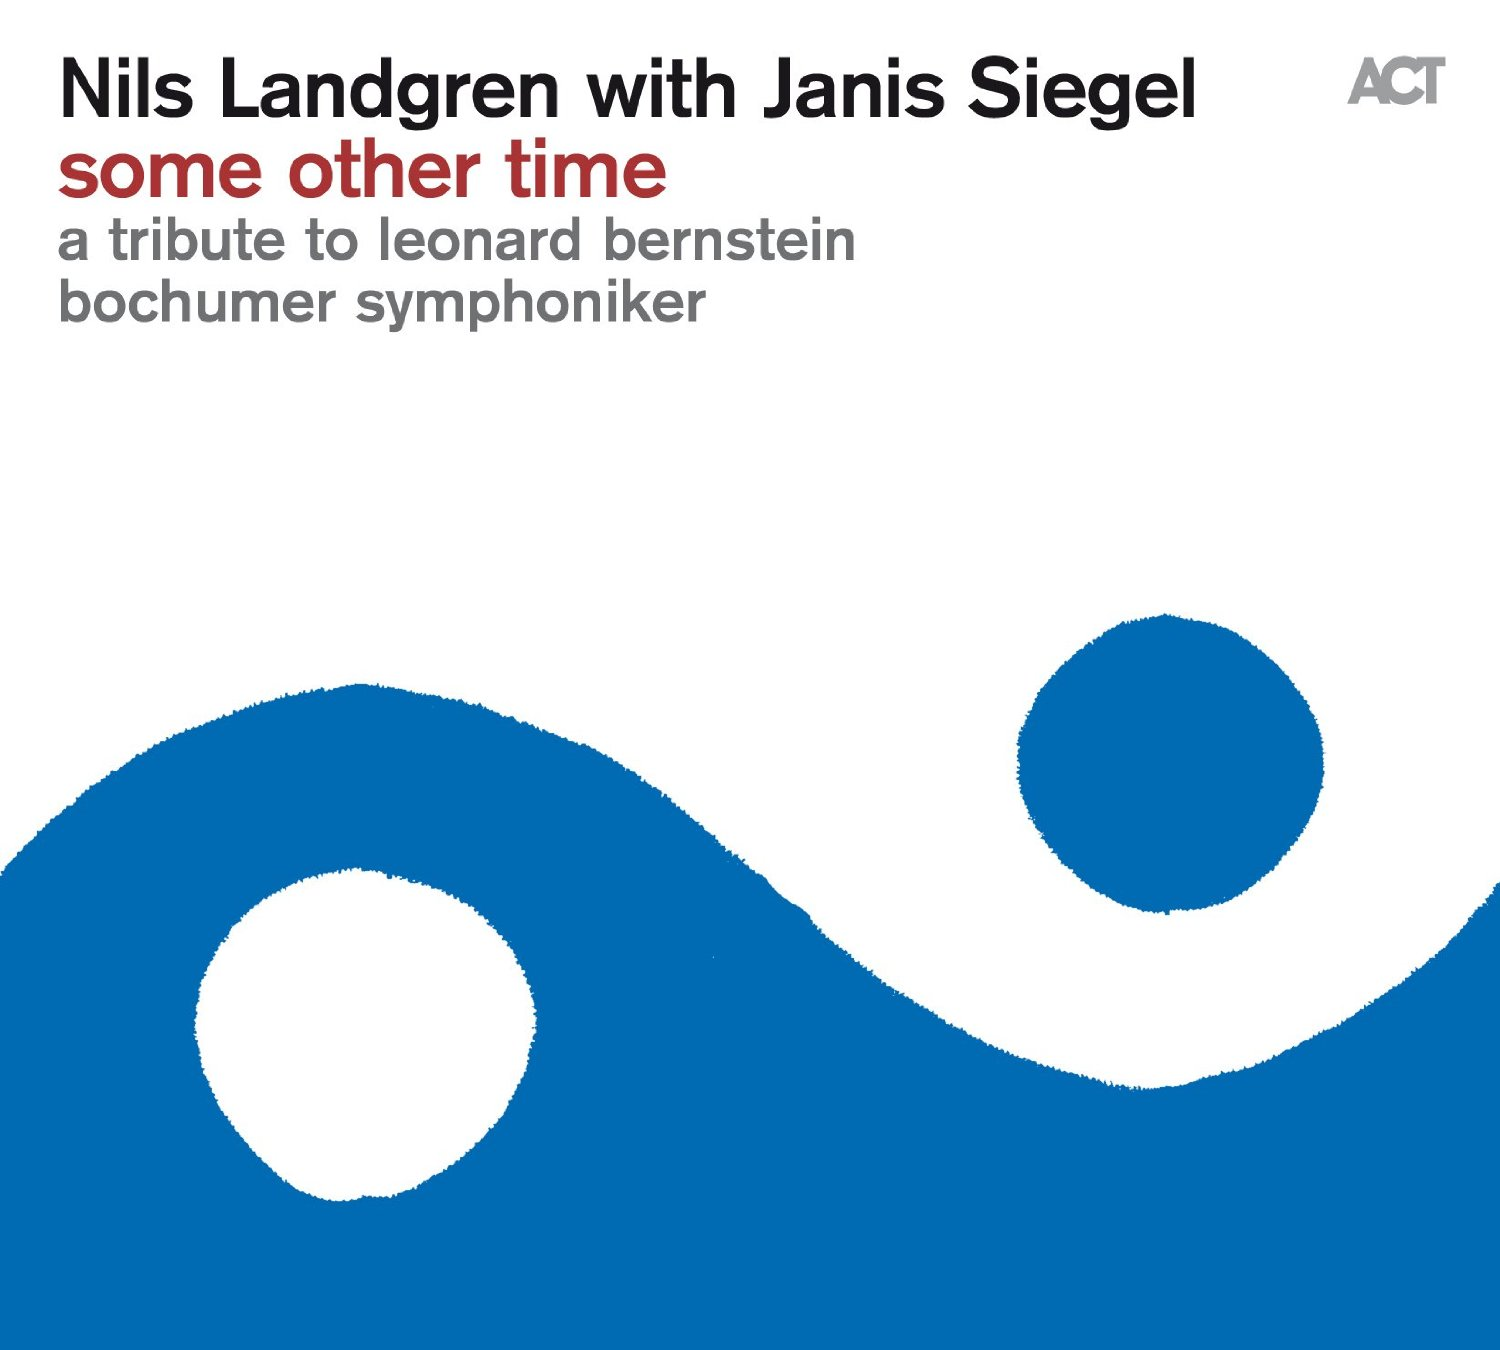 Nils Landgren with Janis Siegel </br>Some Other Time, A Tribute To Leonard Bernstein </br>ACT, 2016